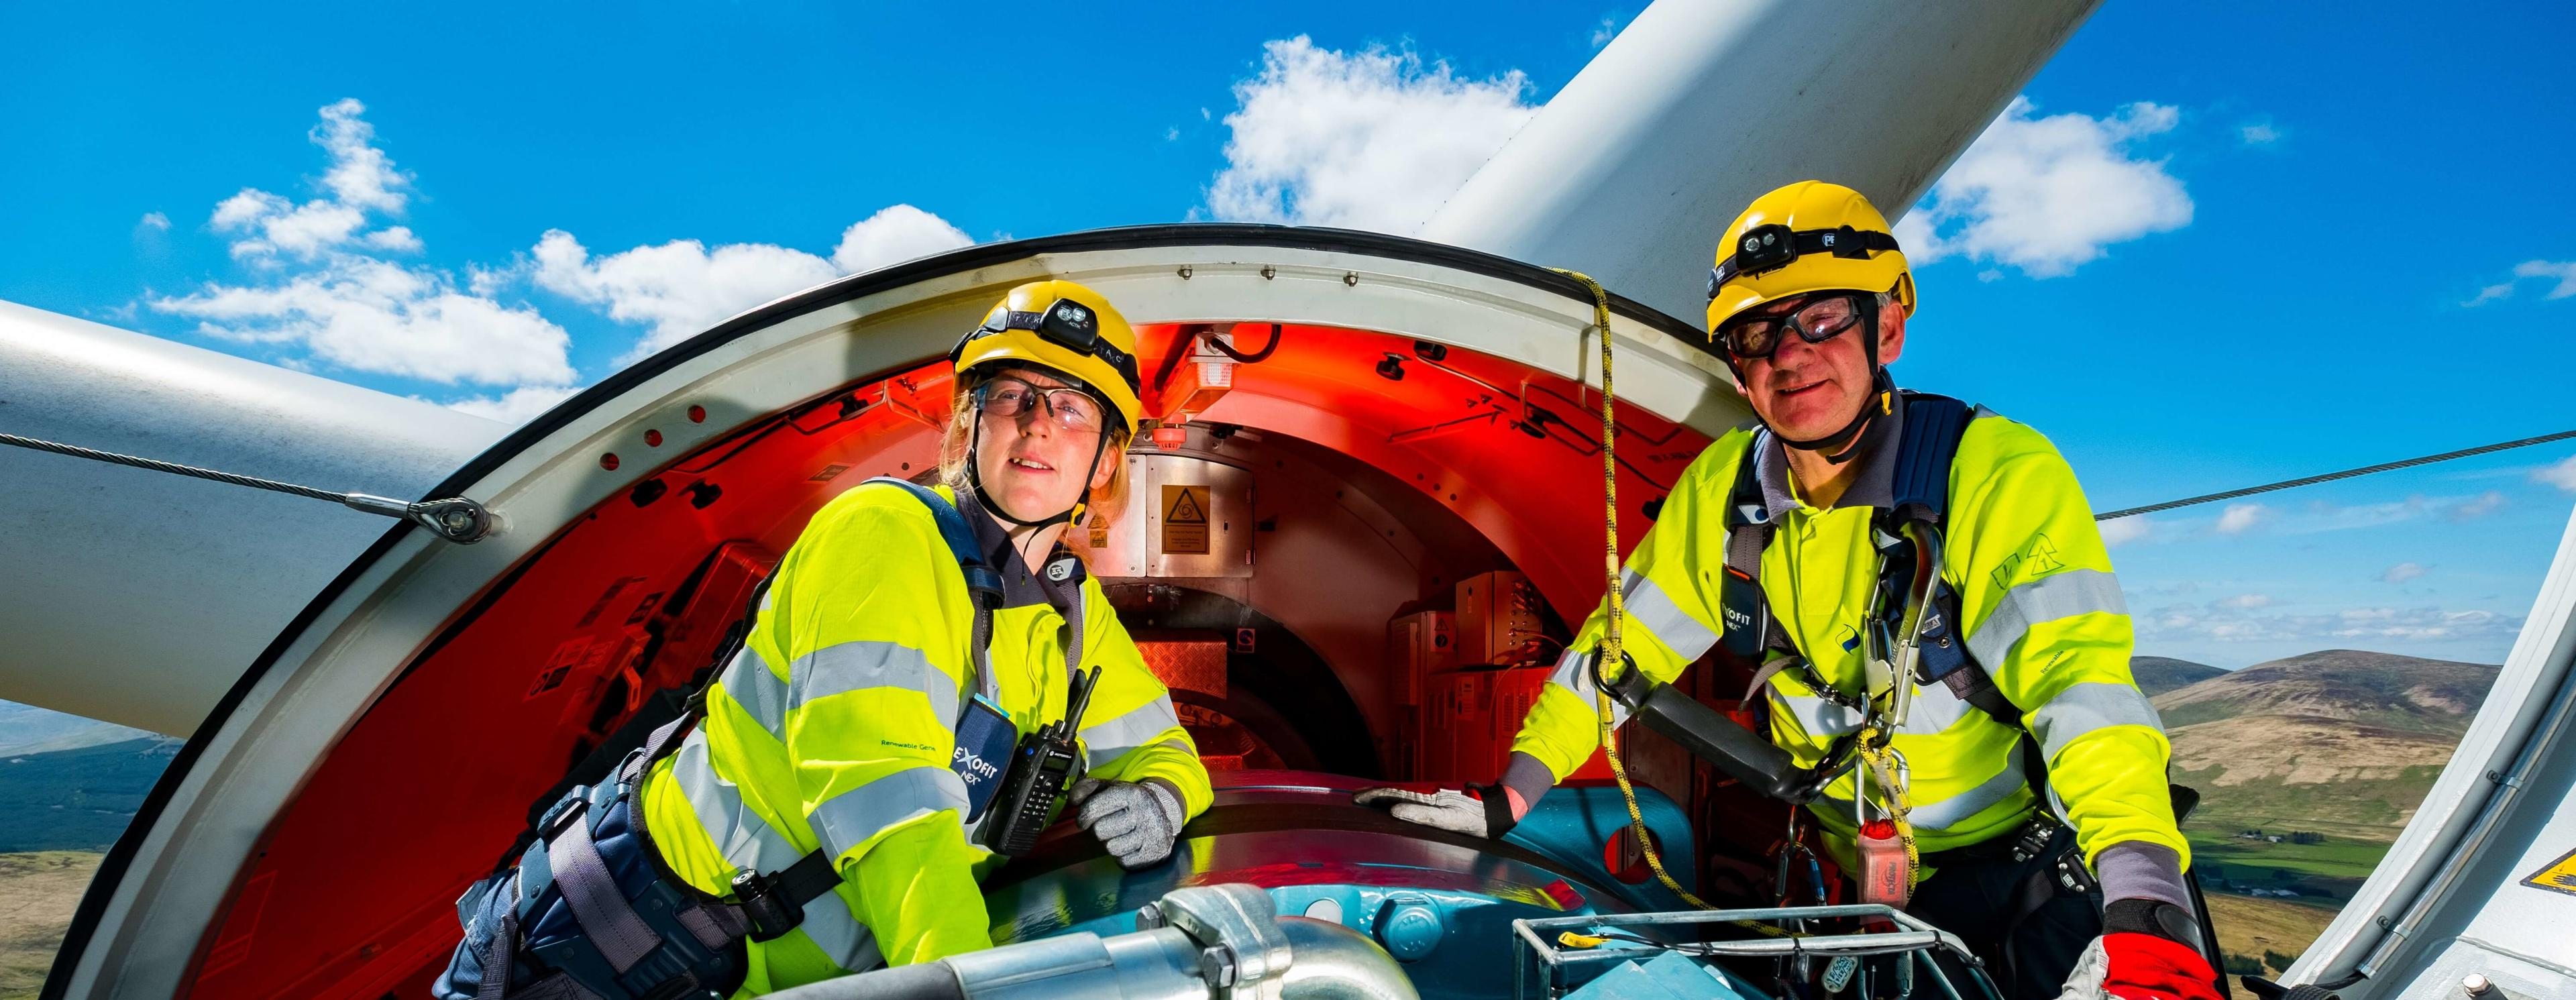 SSE health and safety rebrand project at Clyde Wind Farm